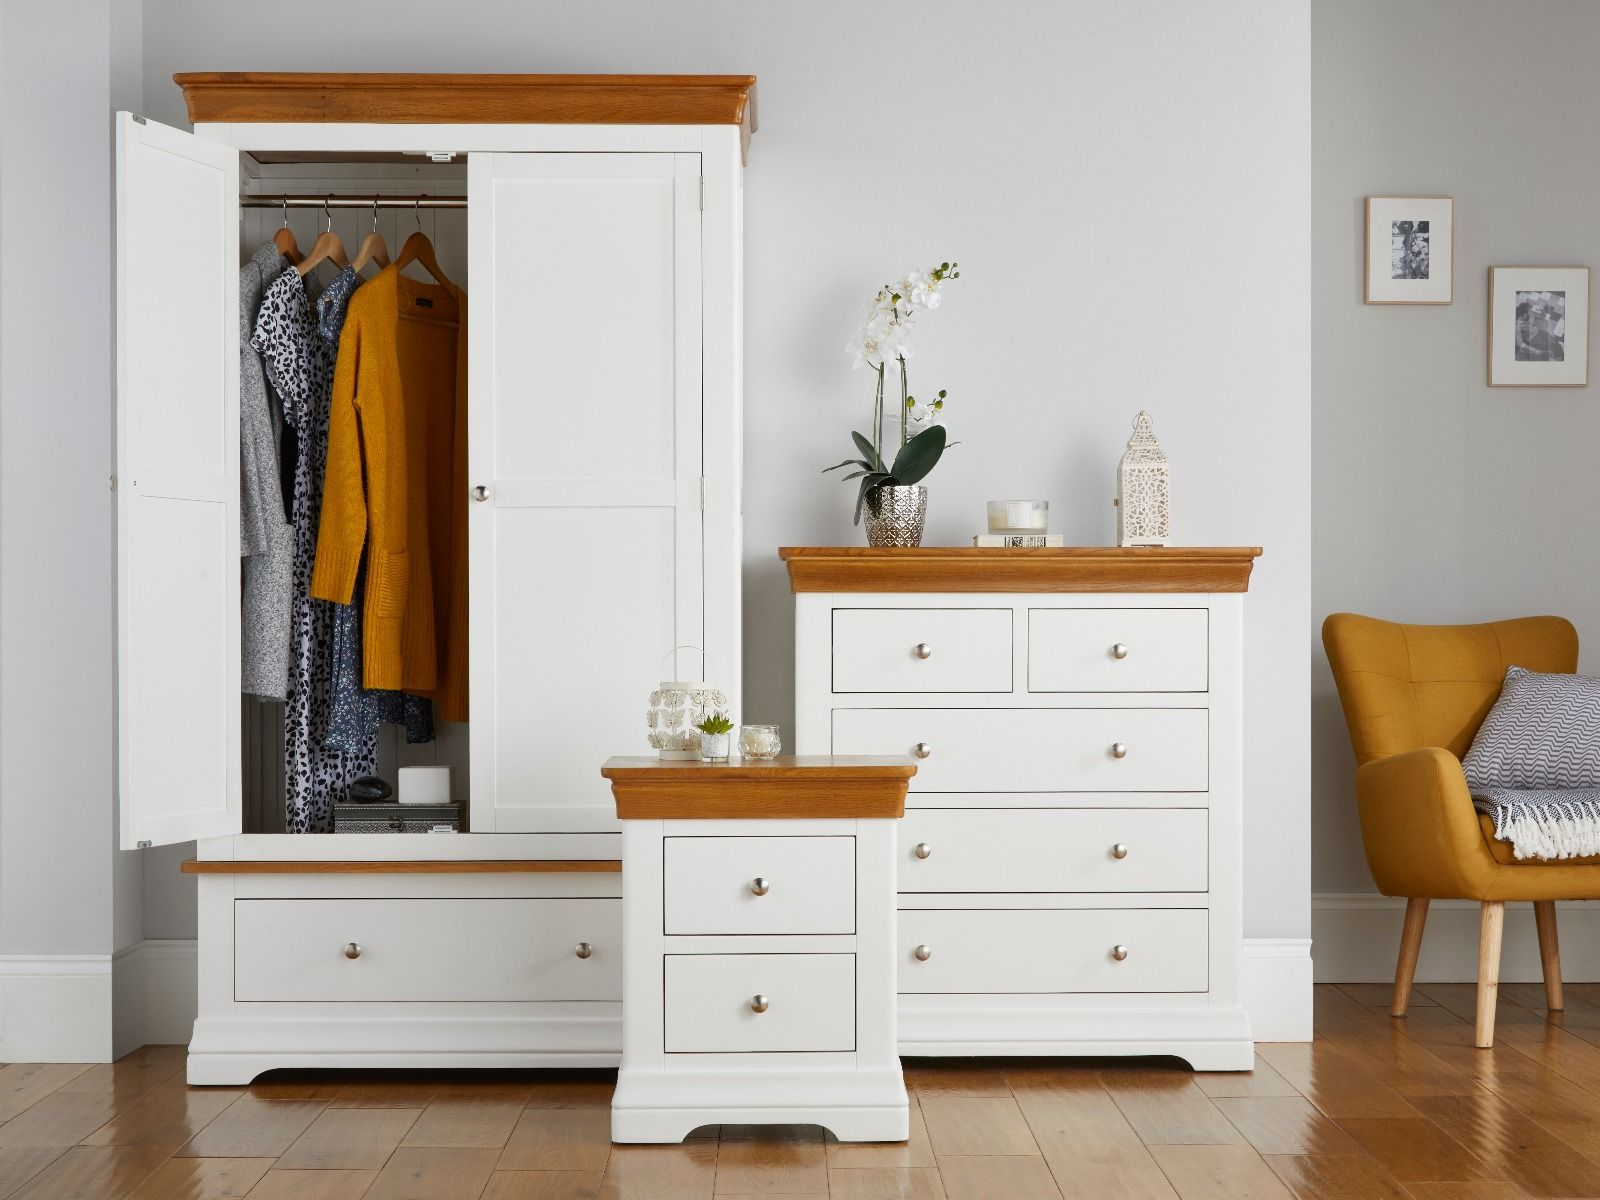 Farmhouse White Painted Oak Bedroom Set Wardrobe Chest Of Drawers And Bedside Table